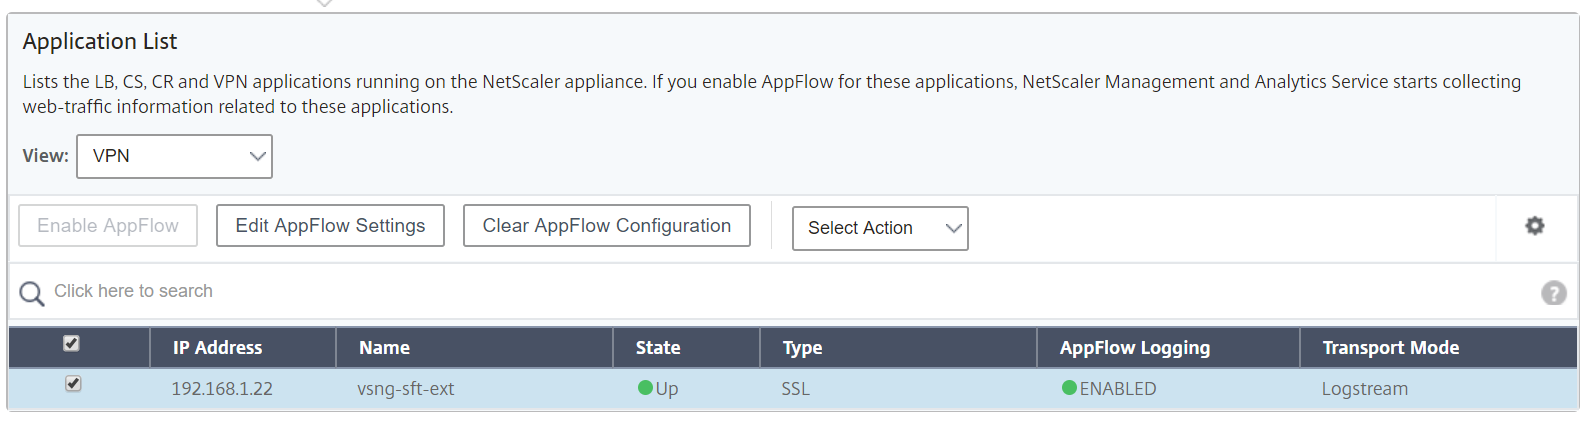 Citrix Management and Analytics Service - Enable App Flow 3